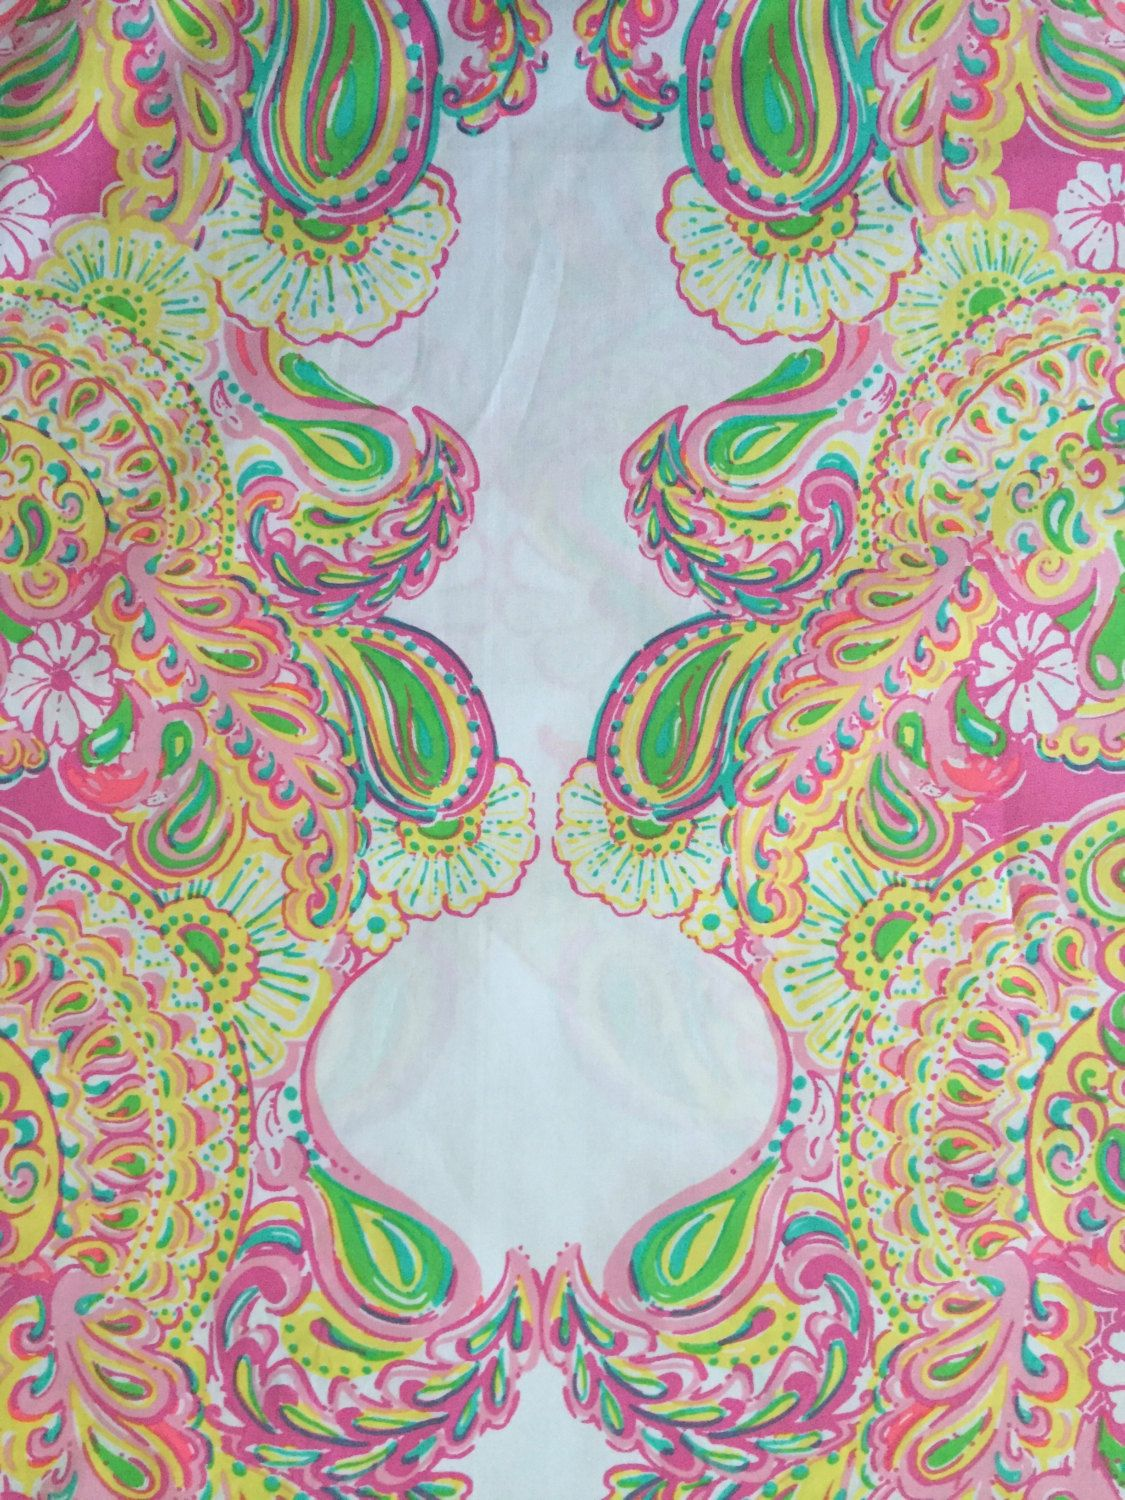 Lilly Pulitzer's Double Trouble White Center Border Print